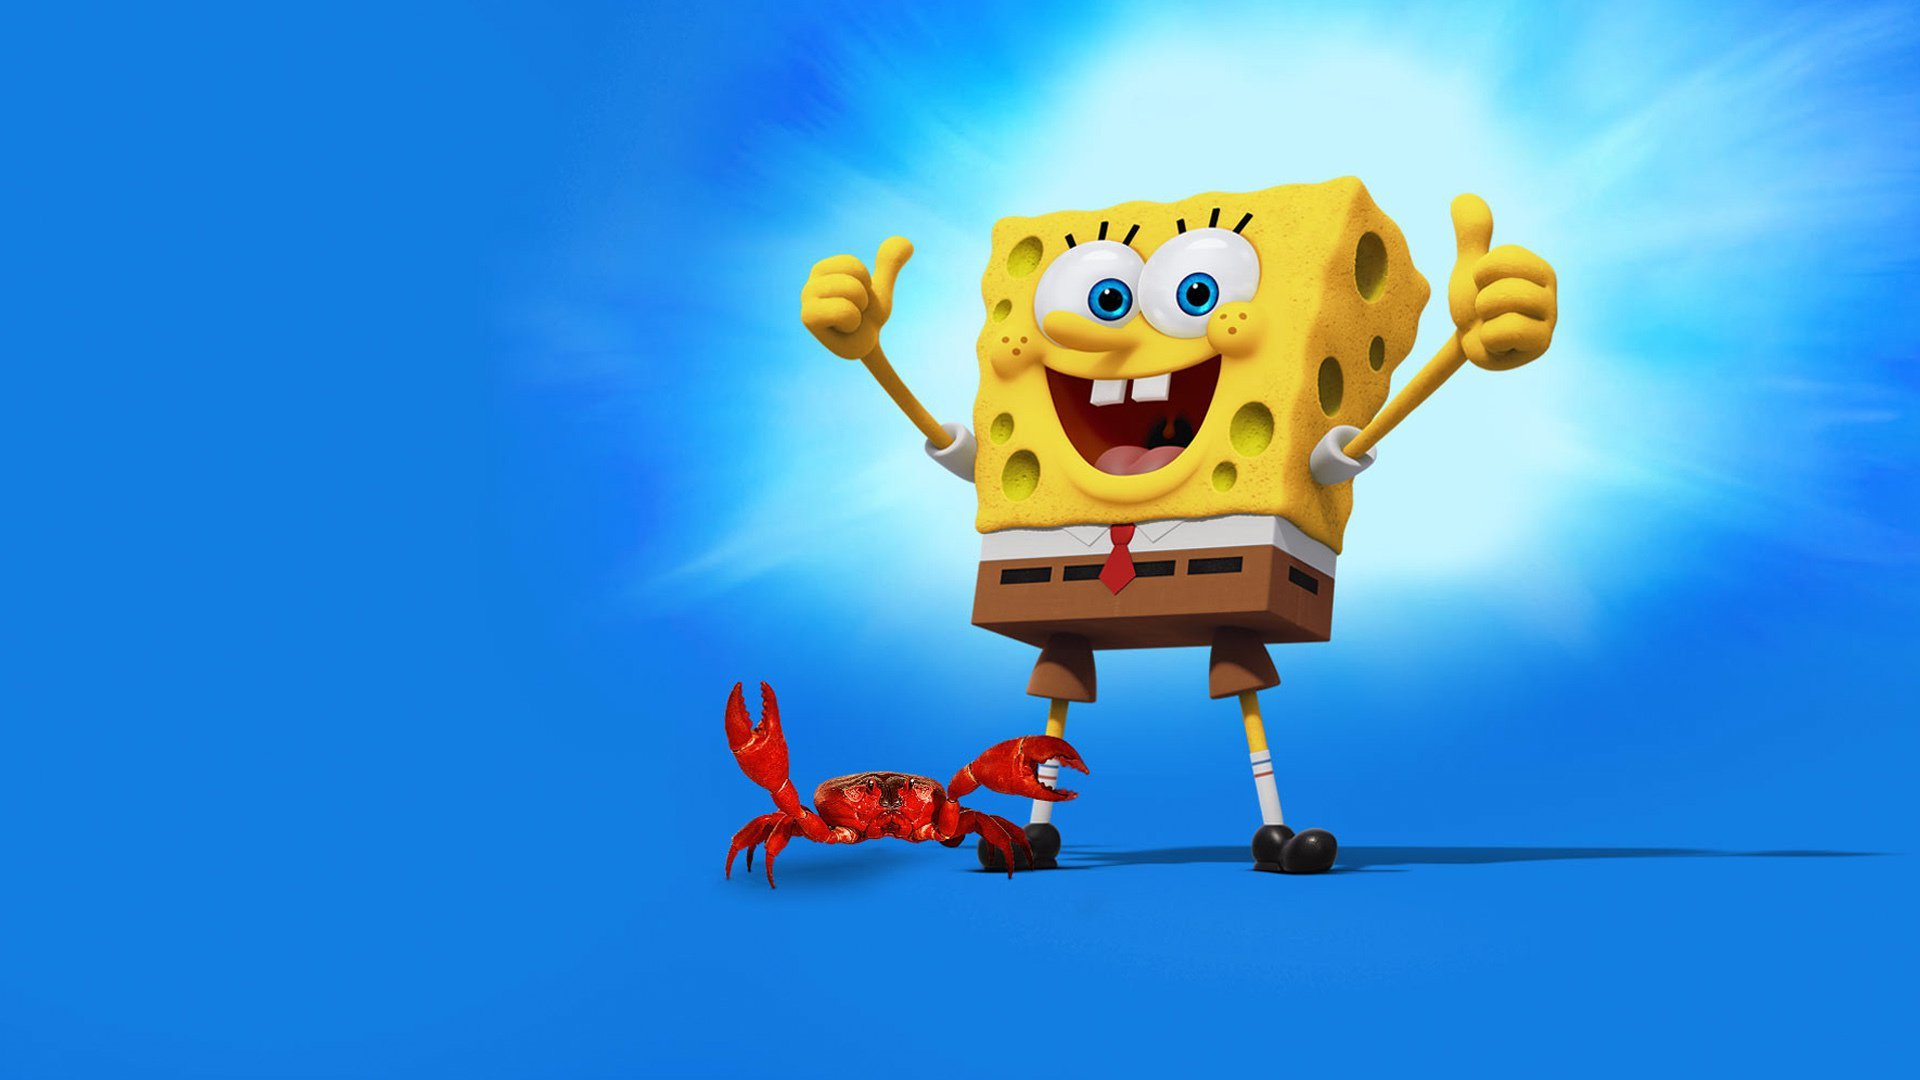 the spongebob movie: sponge out of water wallpapers 1920x1080 full